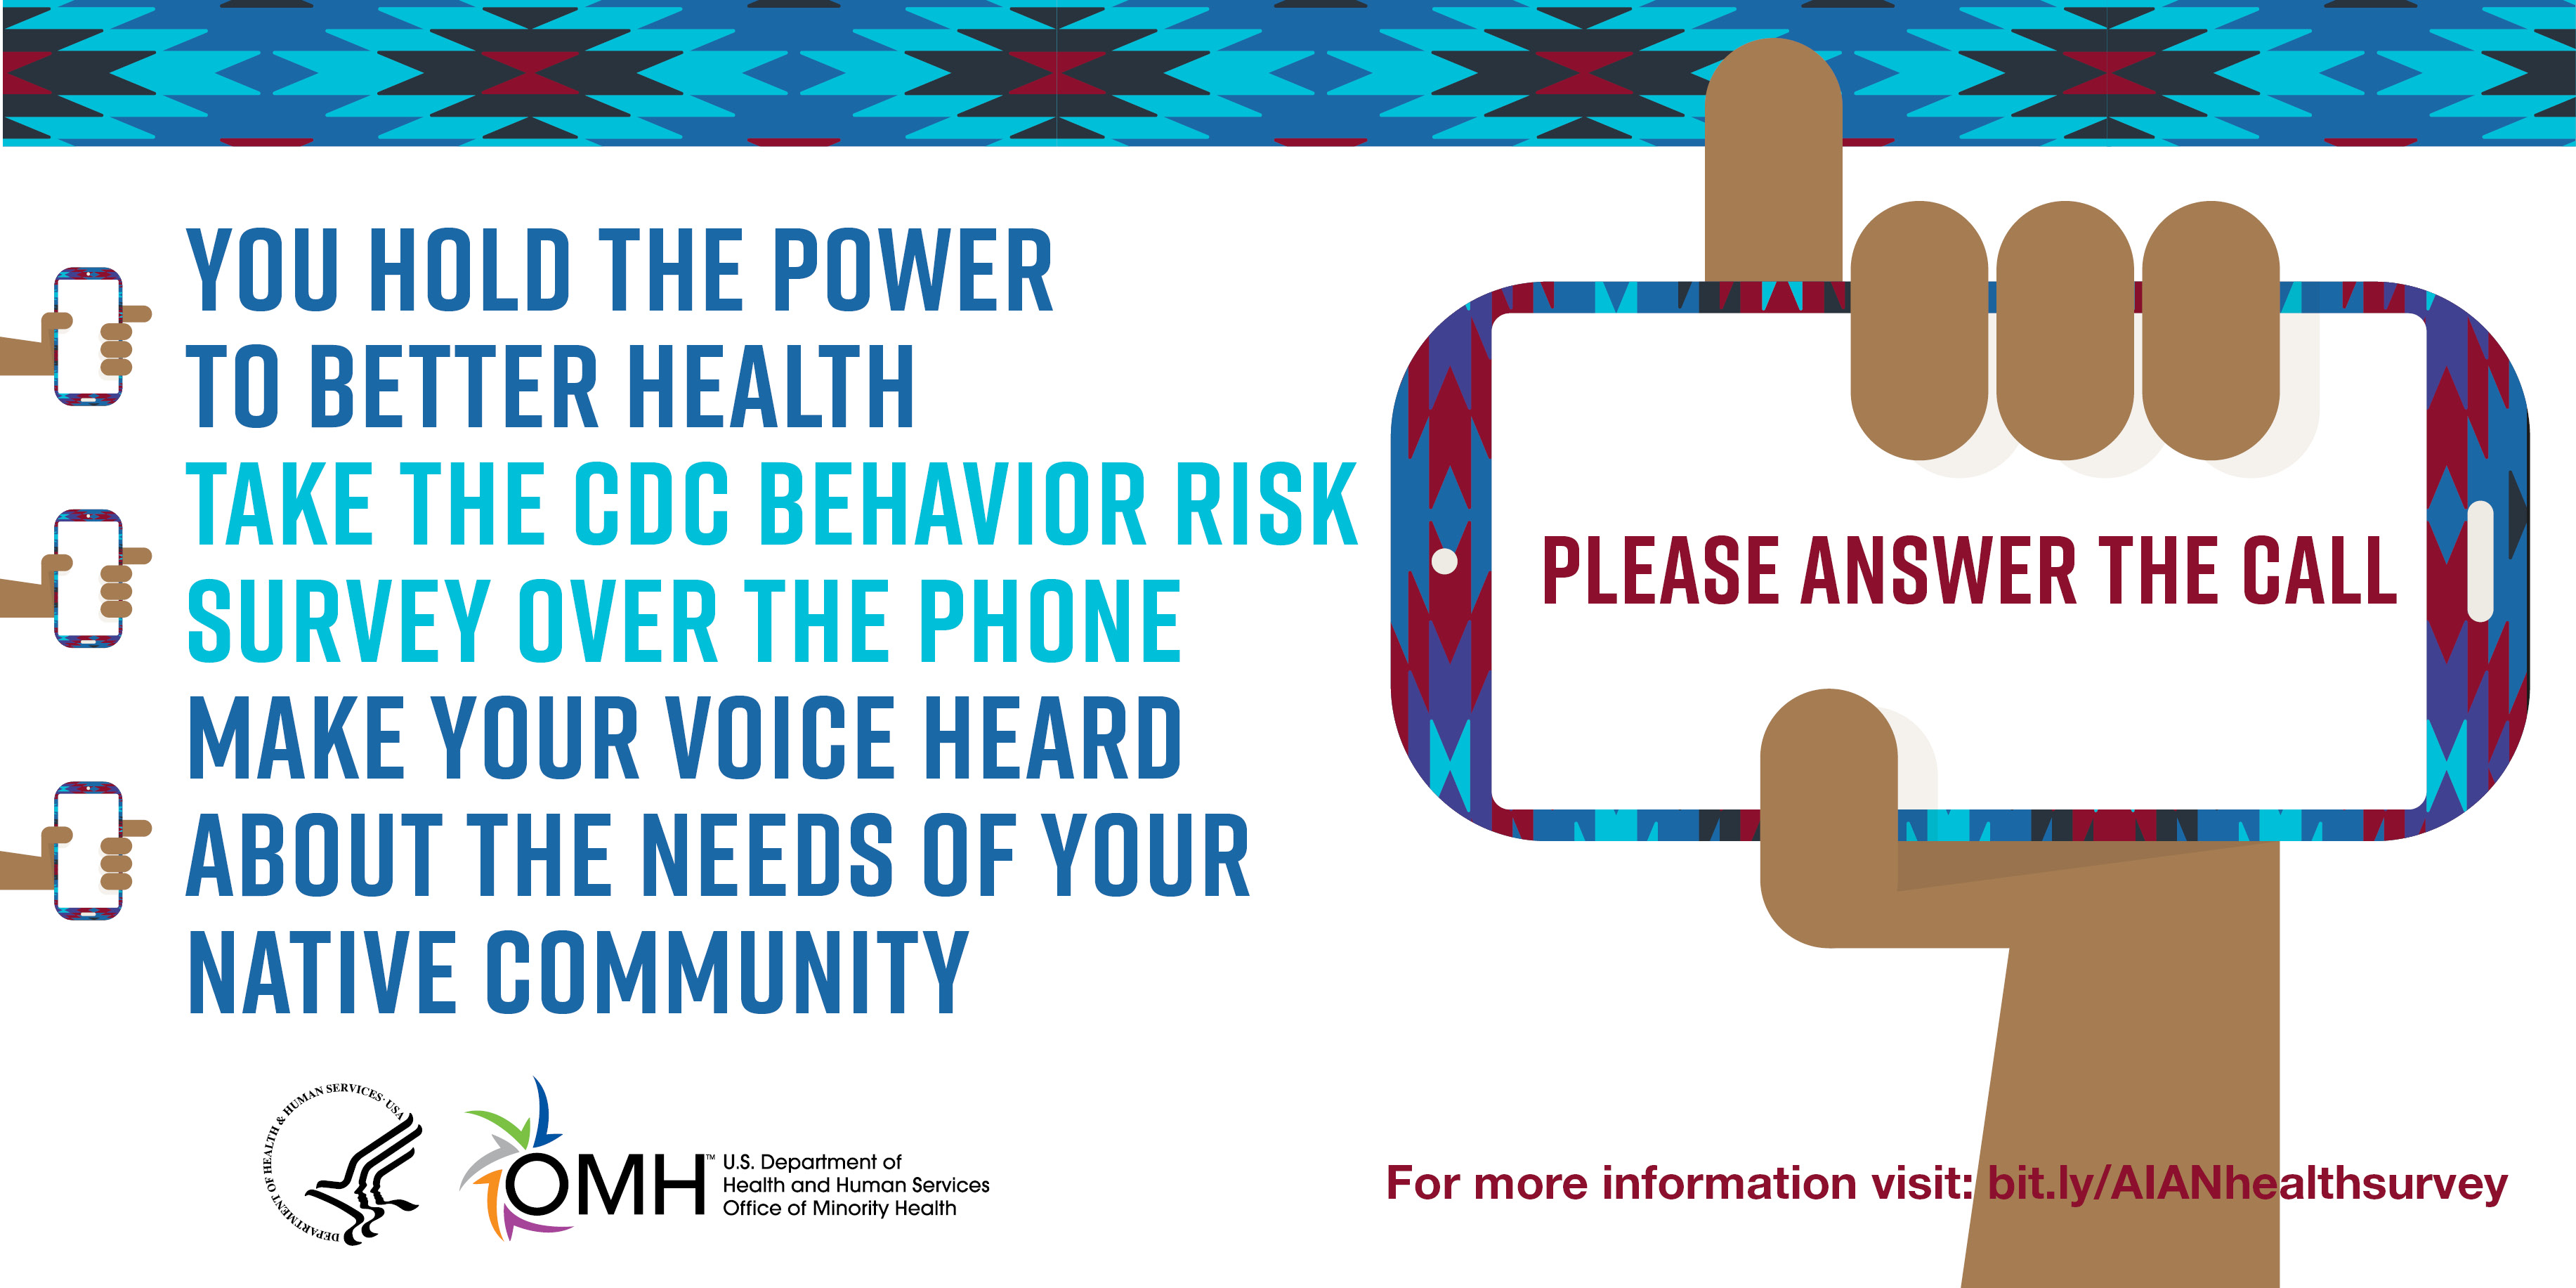 You hold the power to better health 